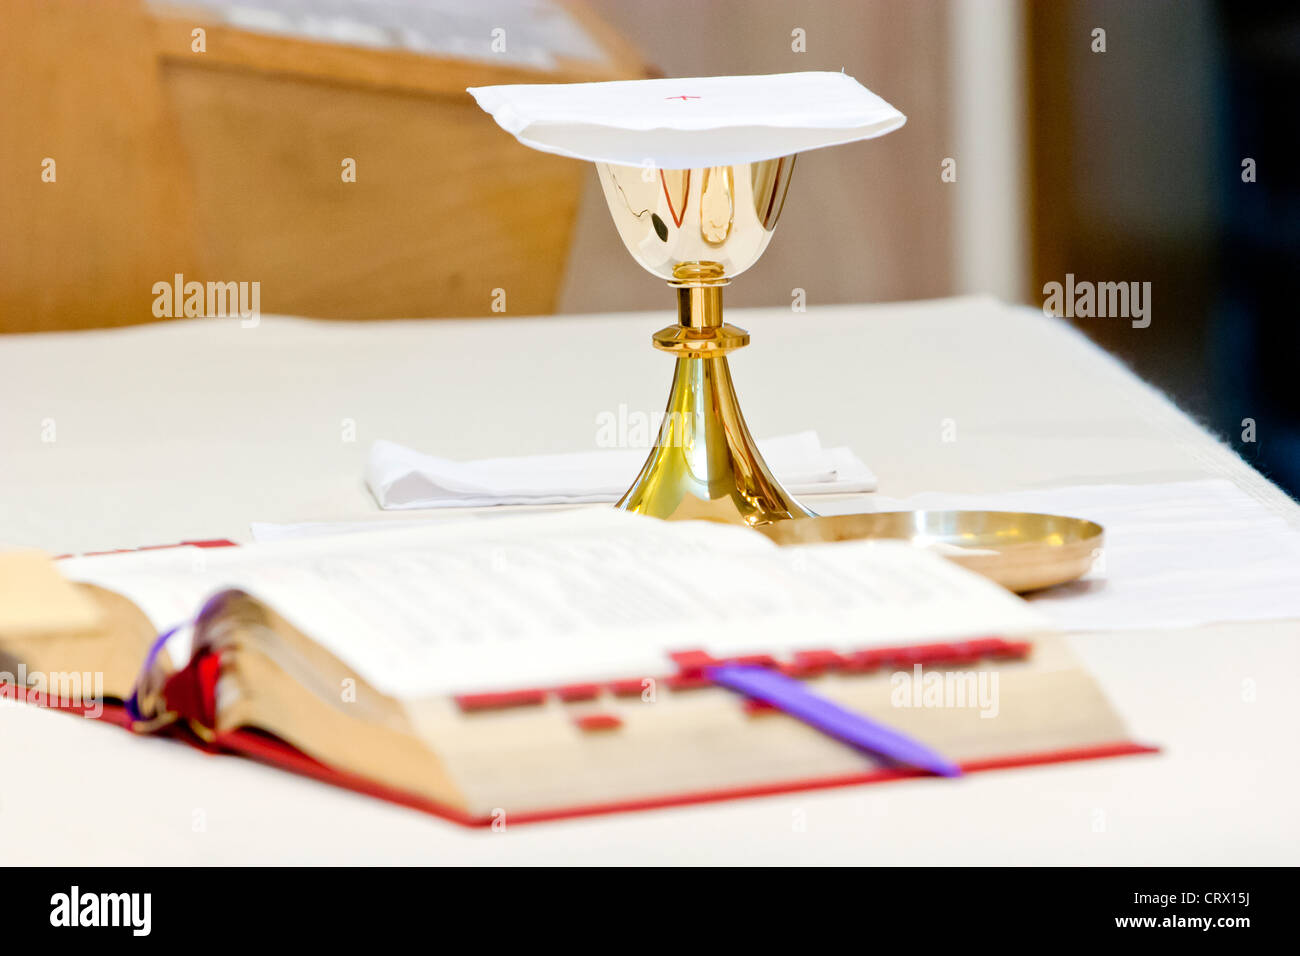 Catholic Mass, a chalice and a prayer book during the religious ceremony. - Stock Image